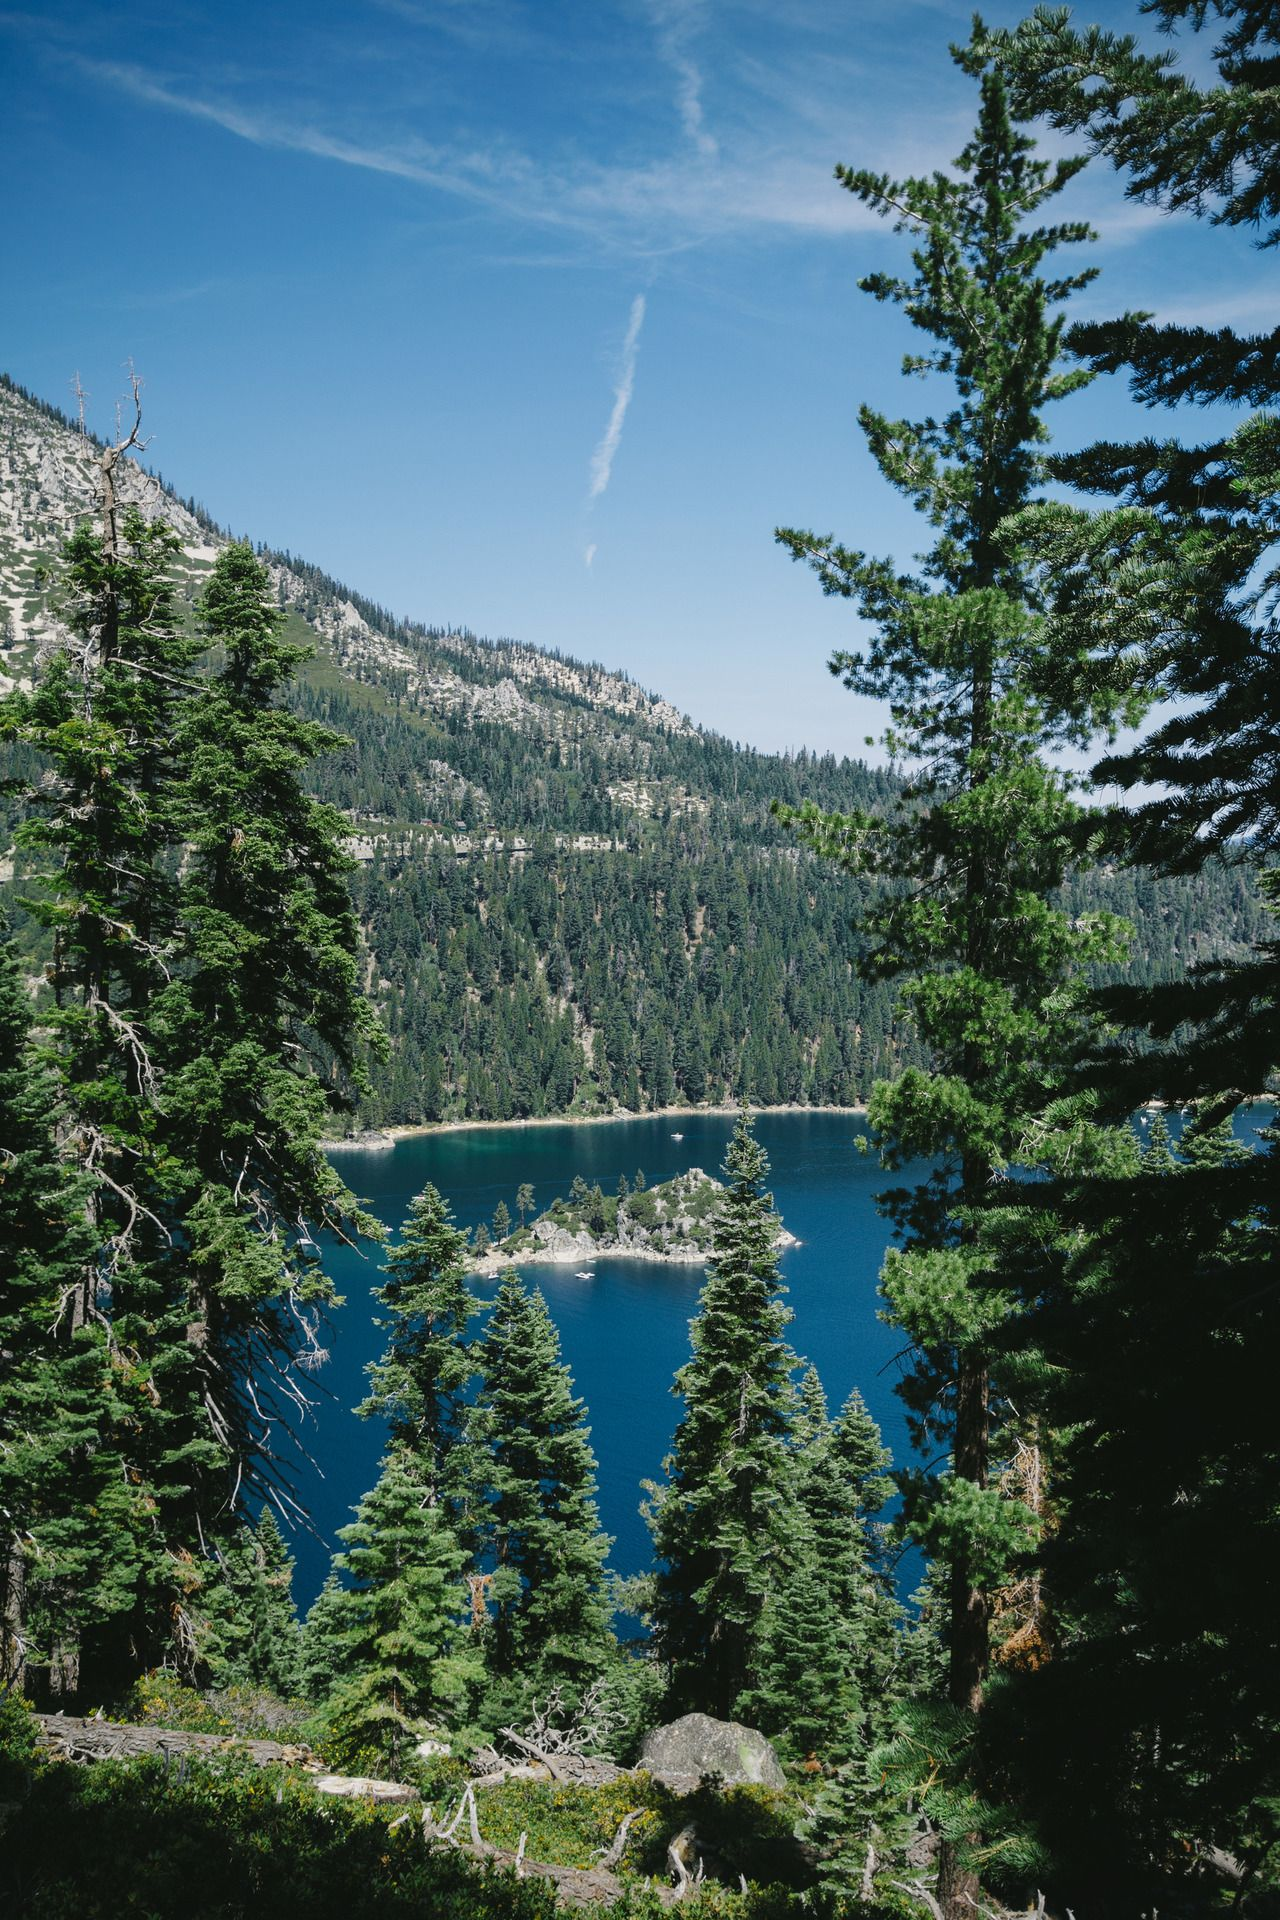 cabin the in blog retreat hills a your area tahoe next of rent view lake with comfortable leaf for cabins fallen